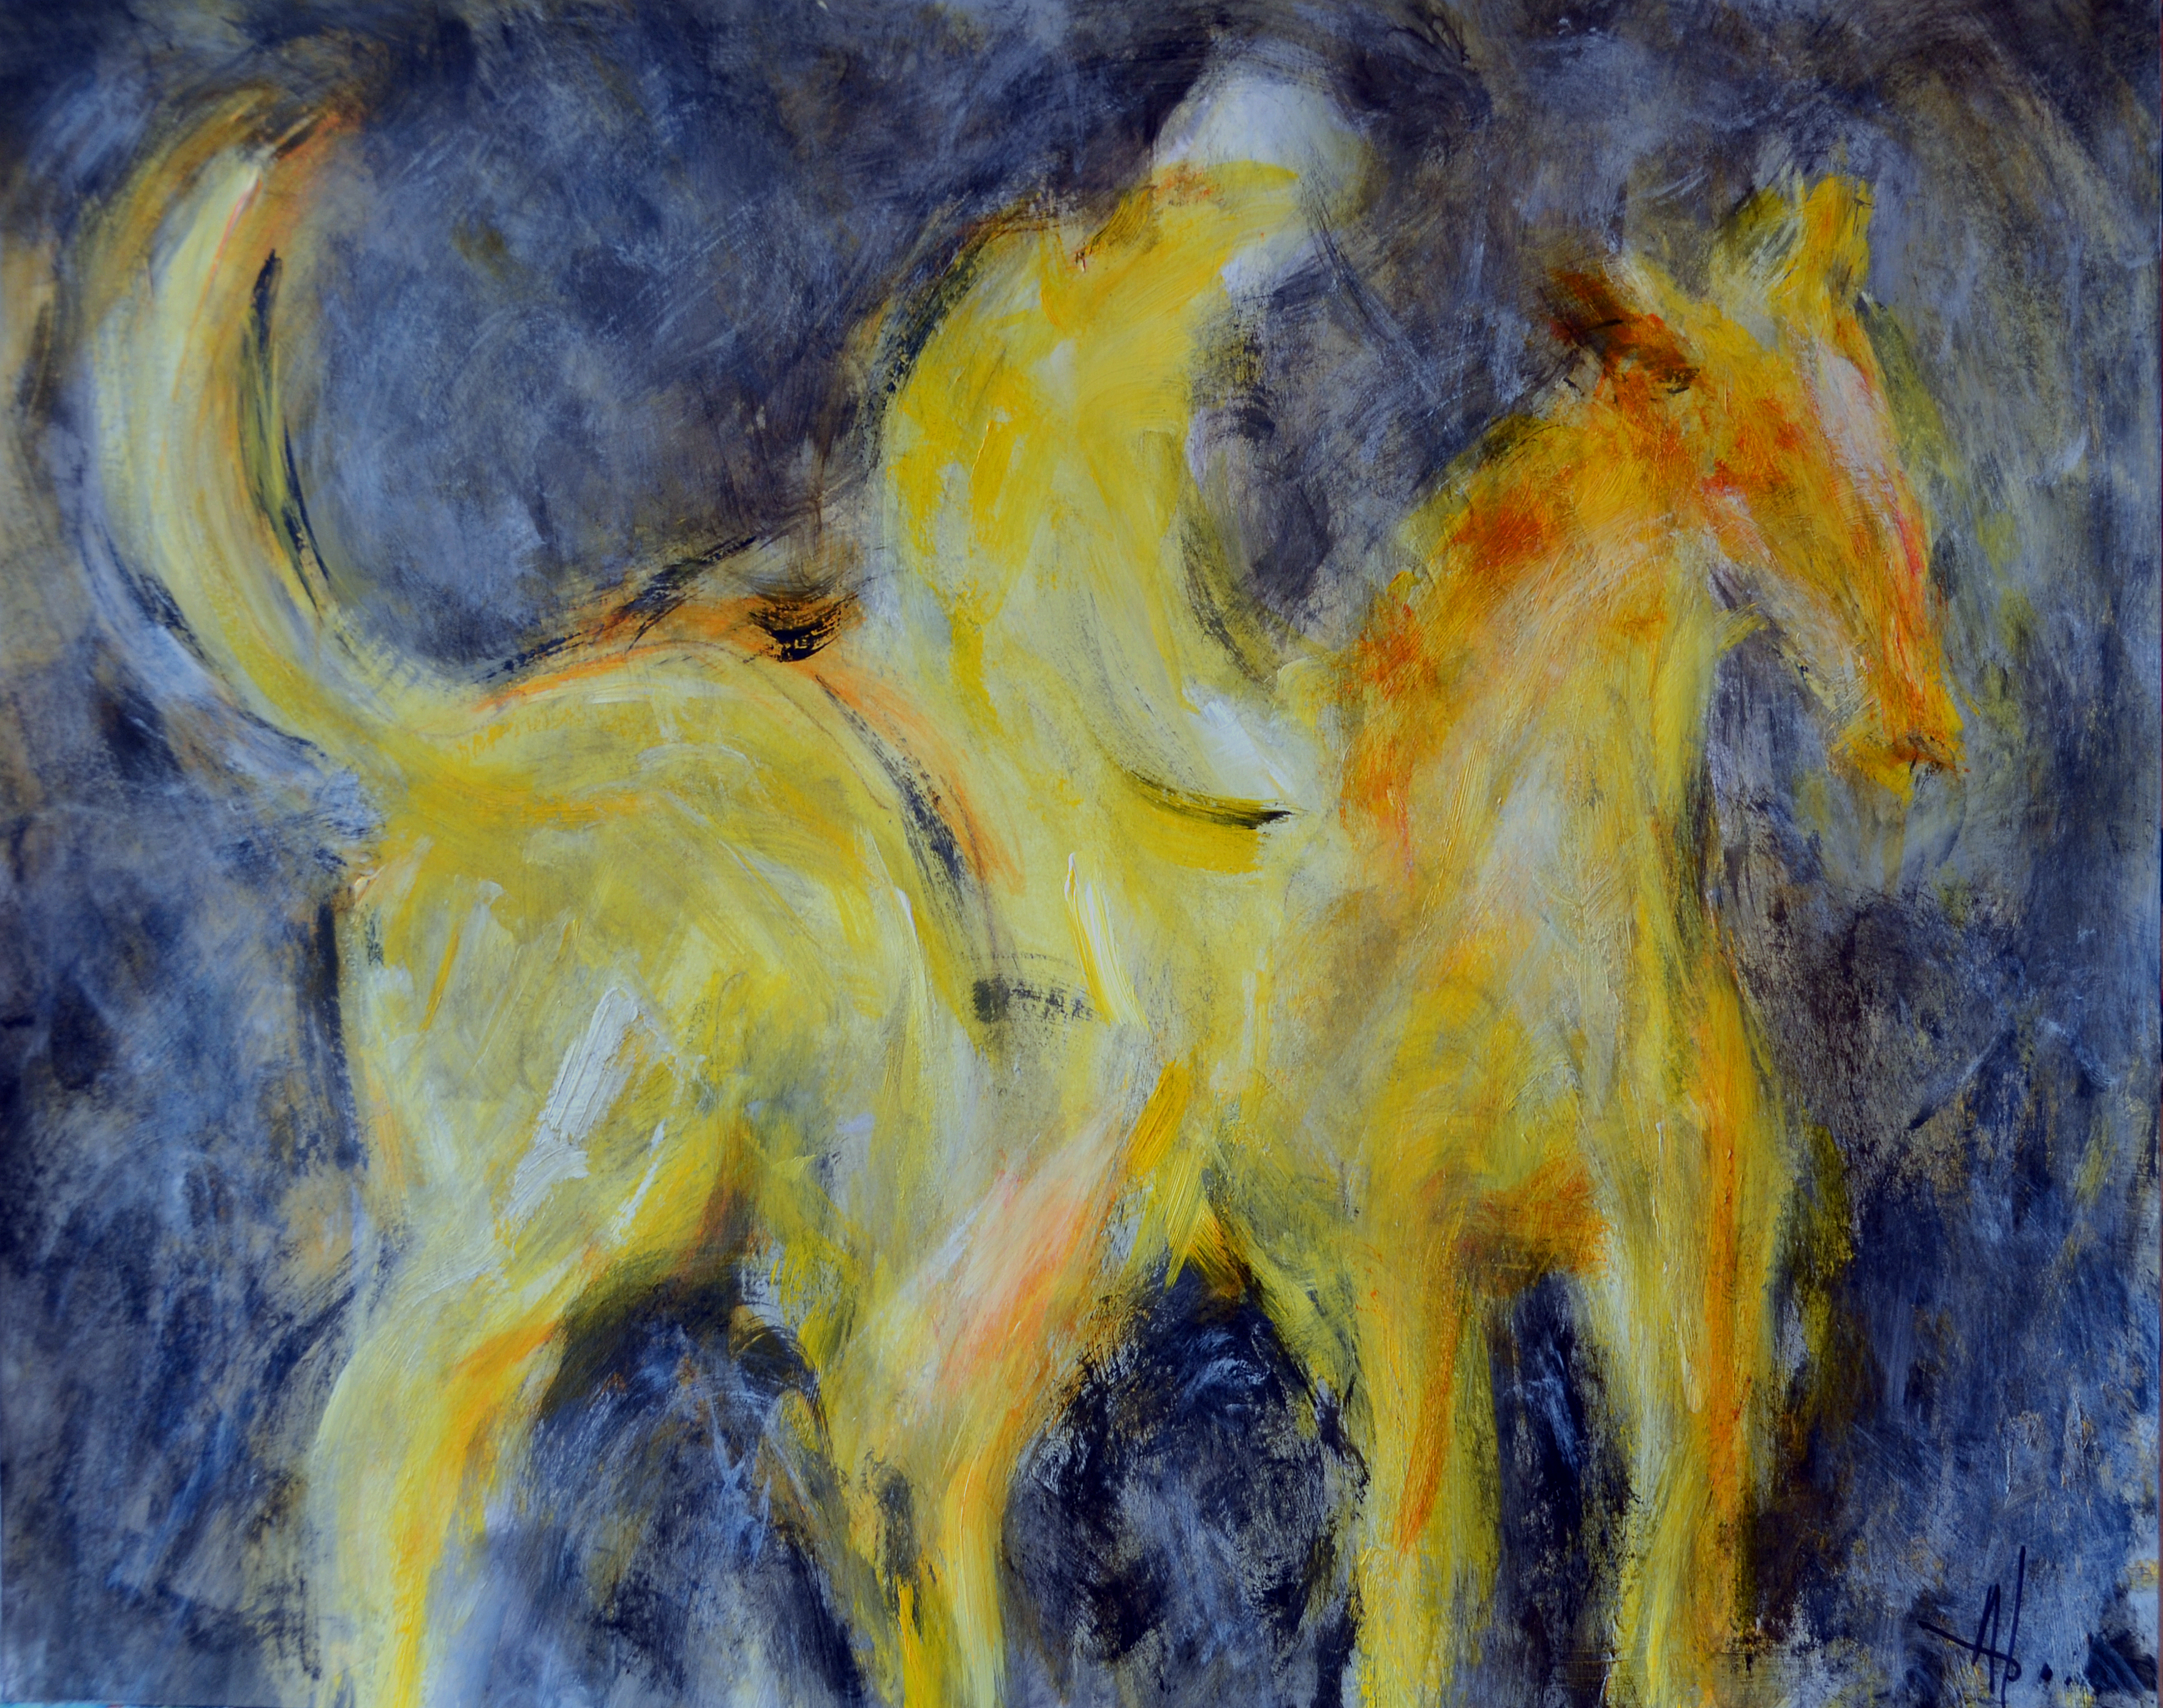 Le cheval tranquille